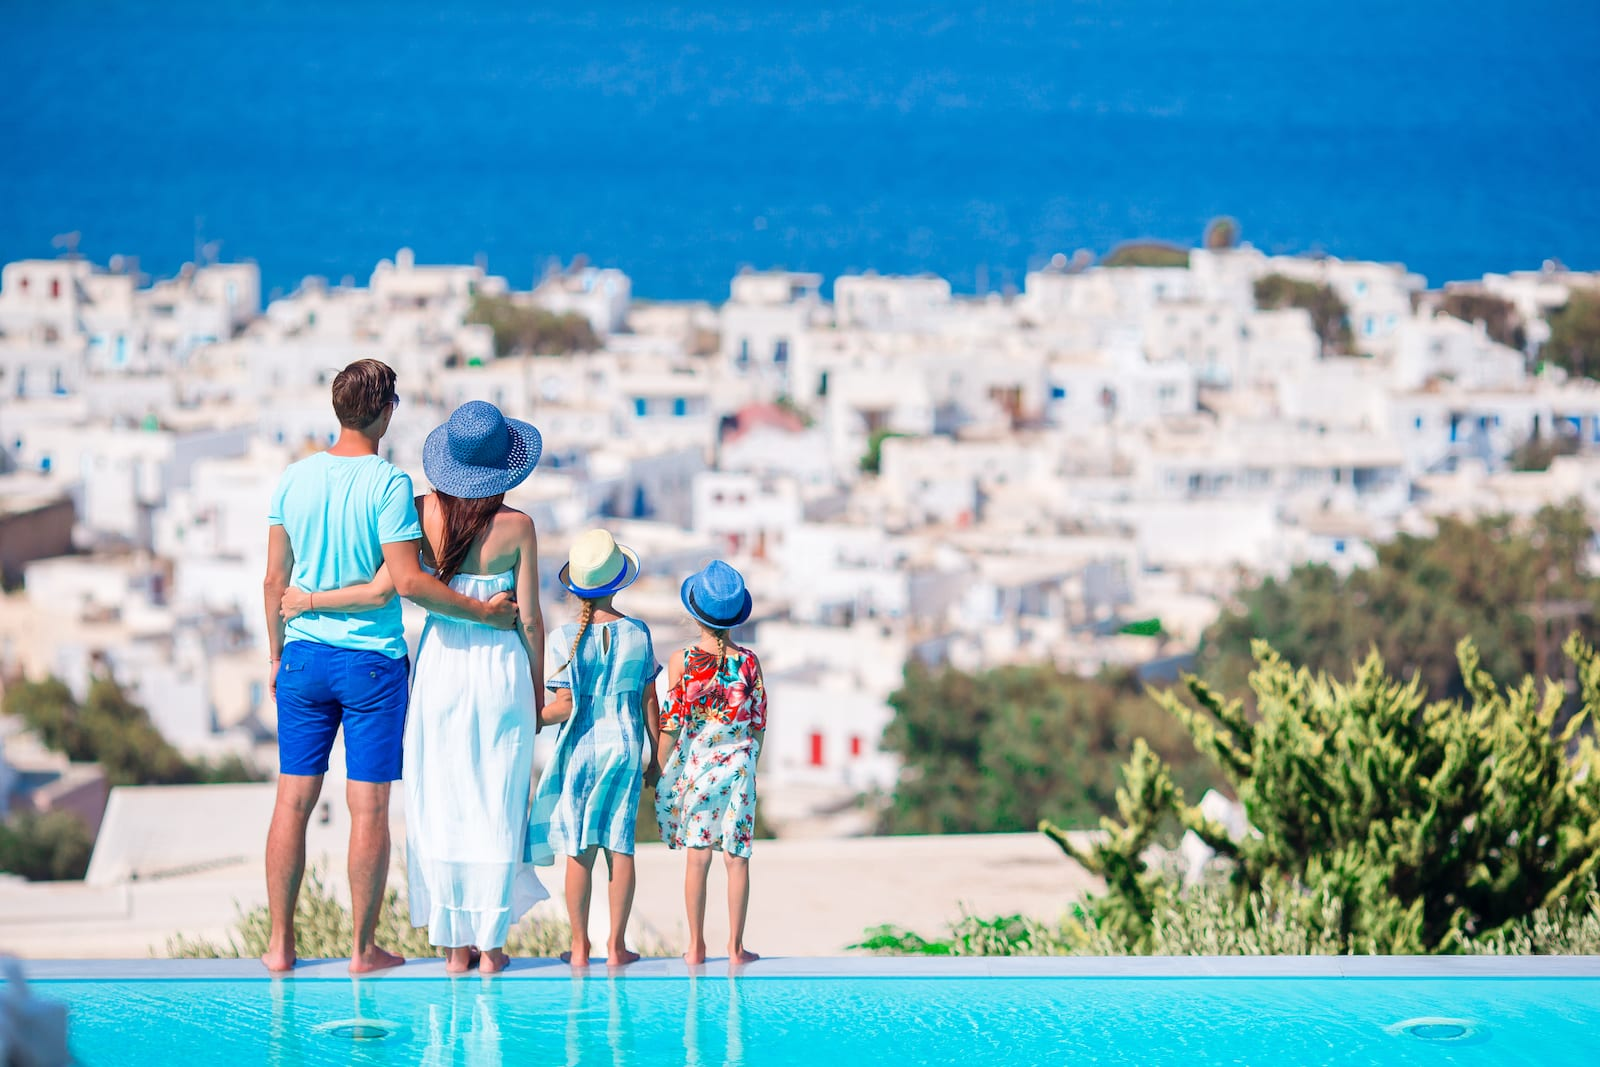 A family admiring a few from their pool looking out into the town.